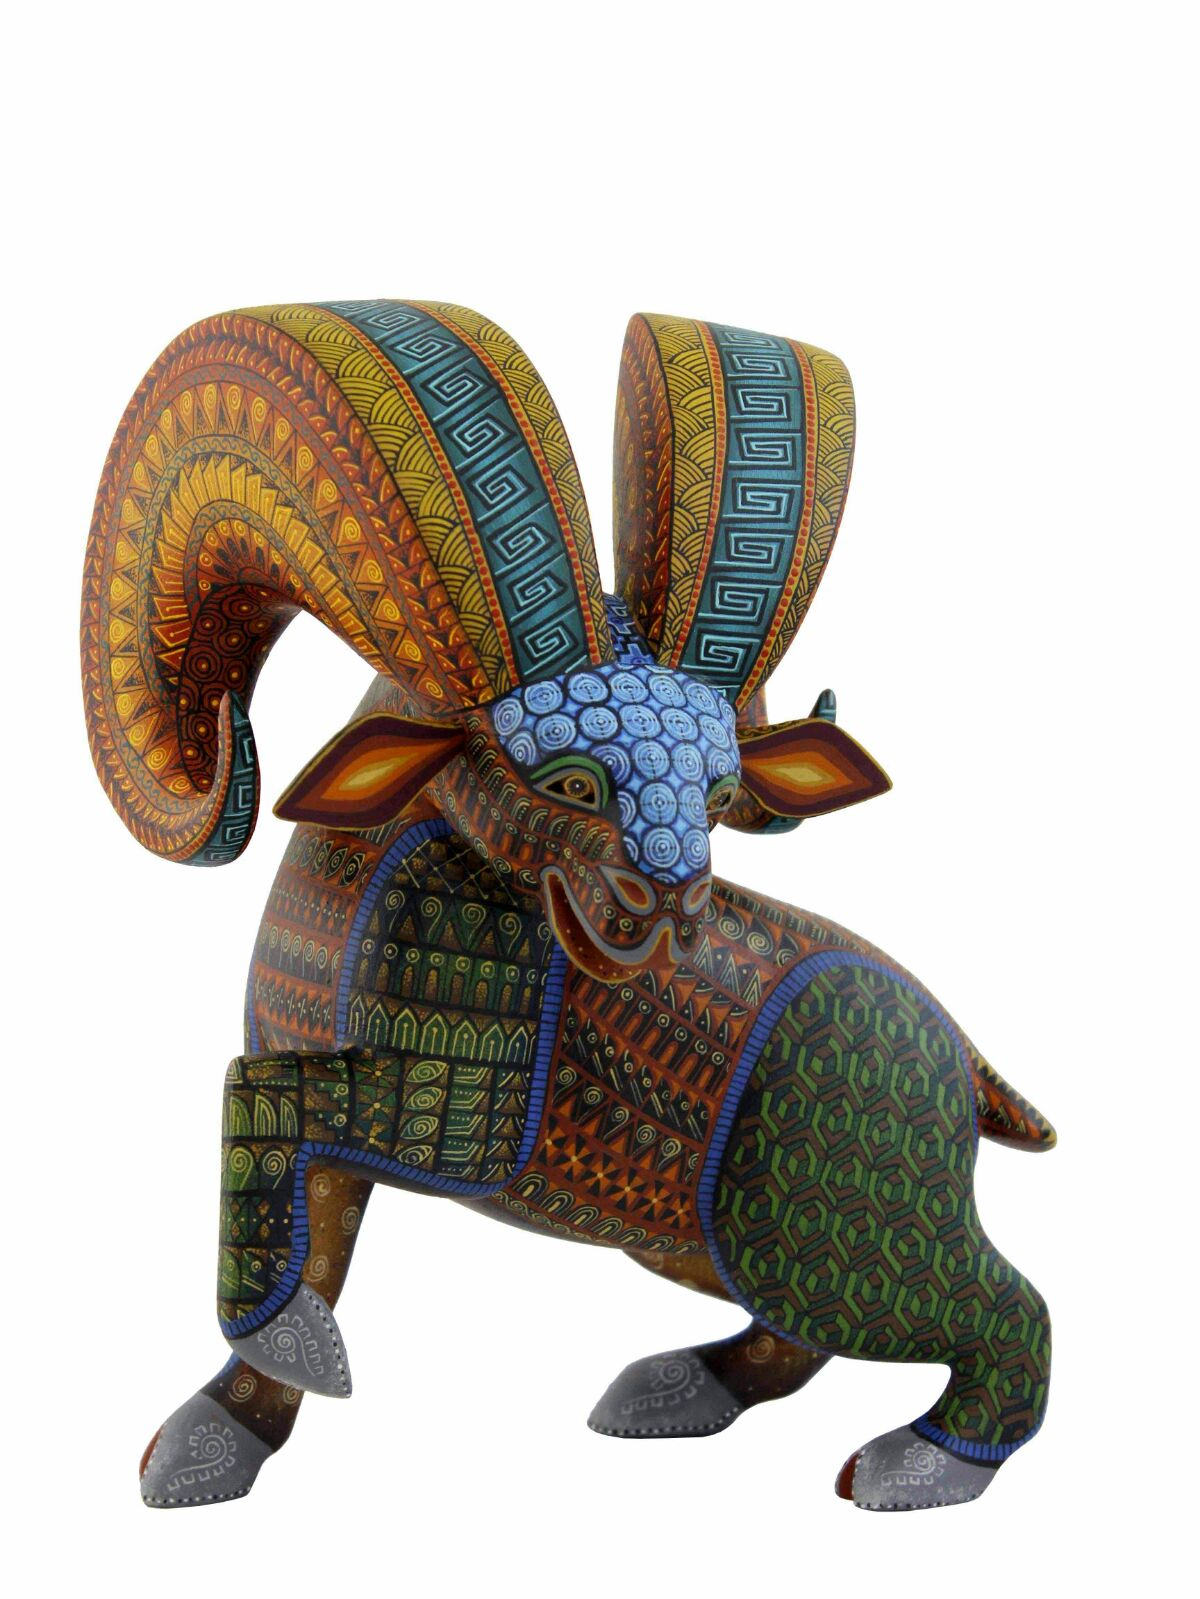 Jacobo & Maria Angeles Original Alebrijes Borrego #7, lamb